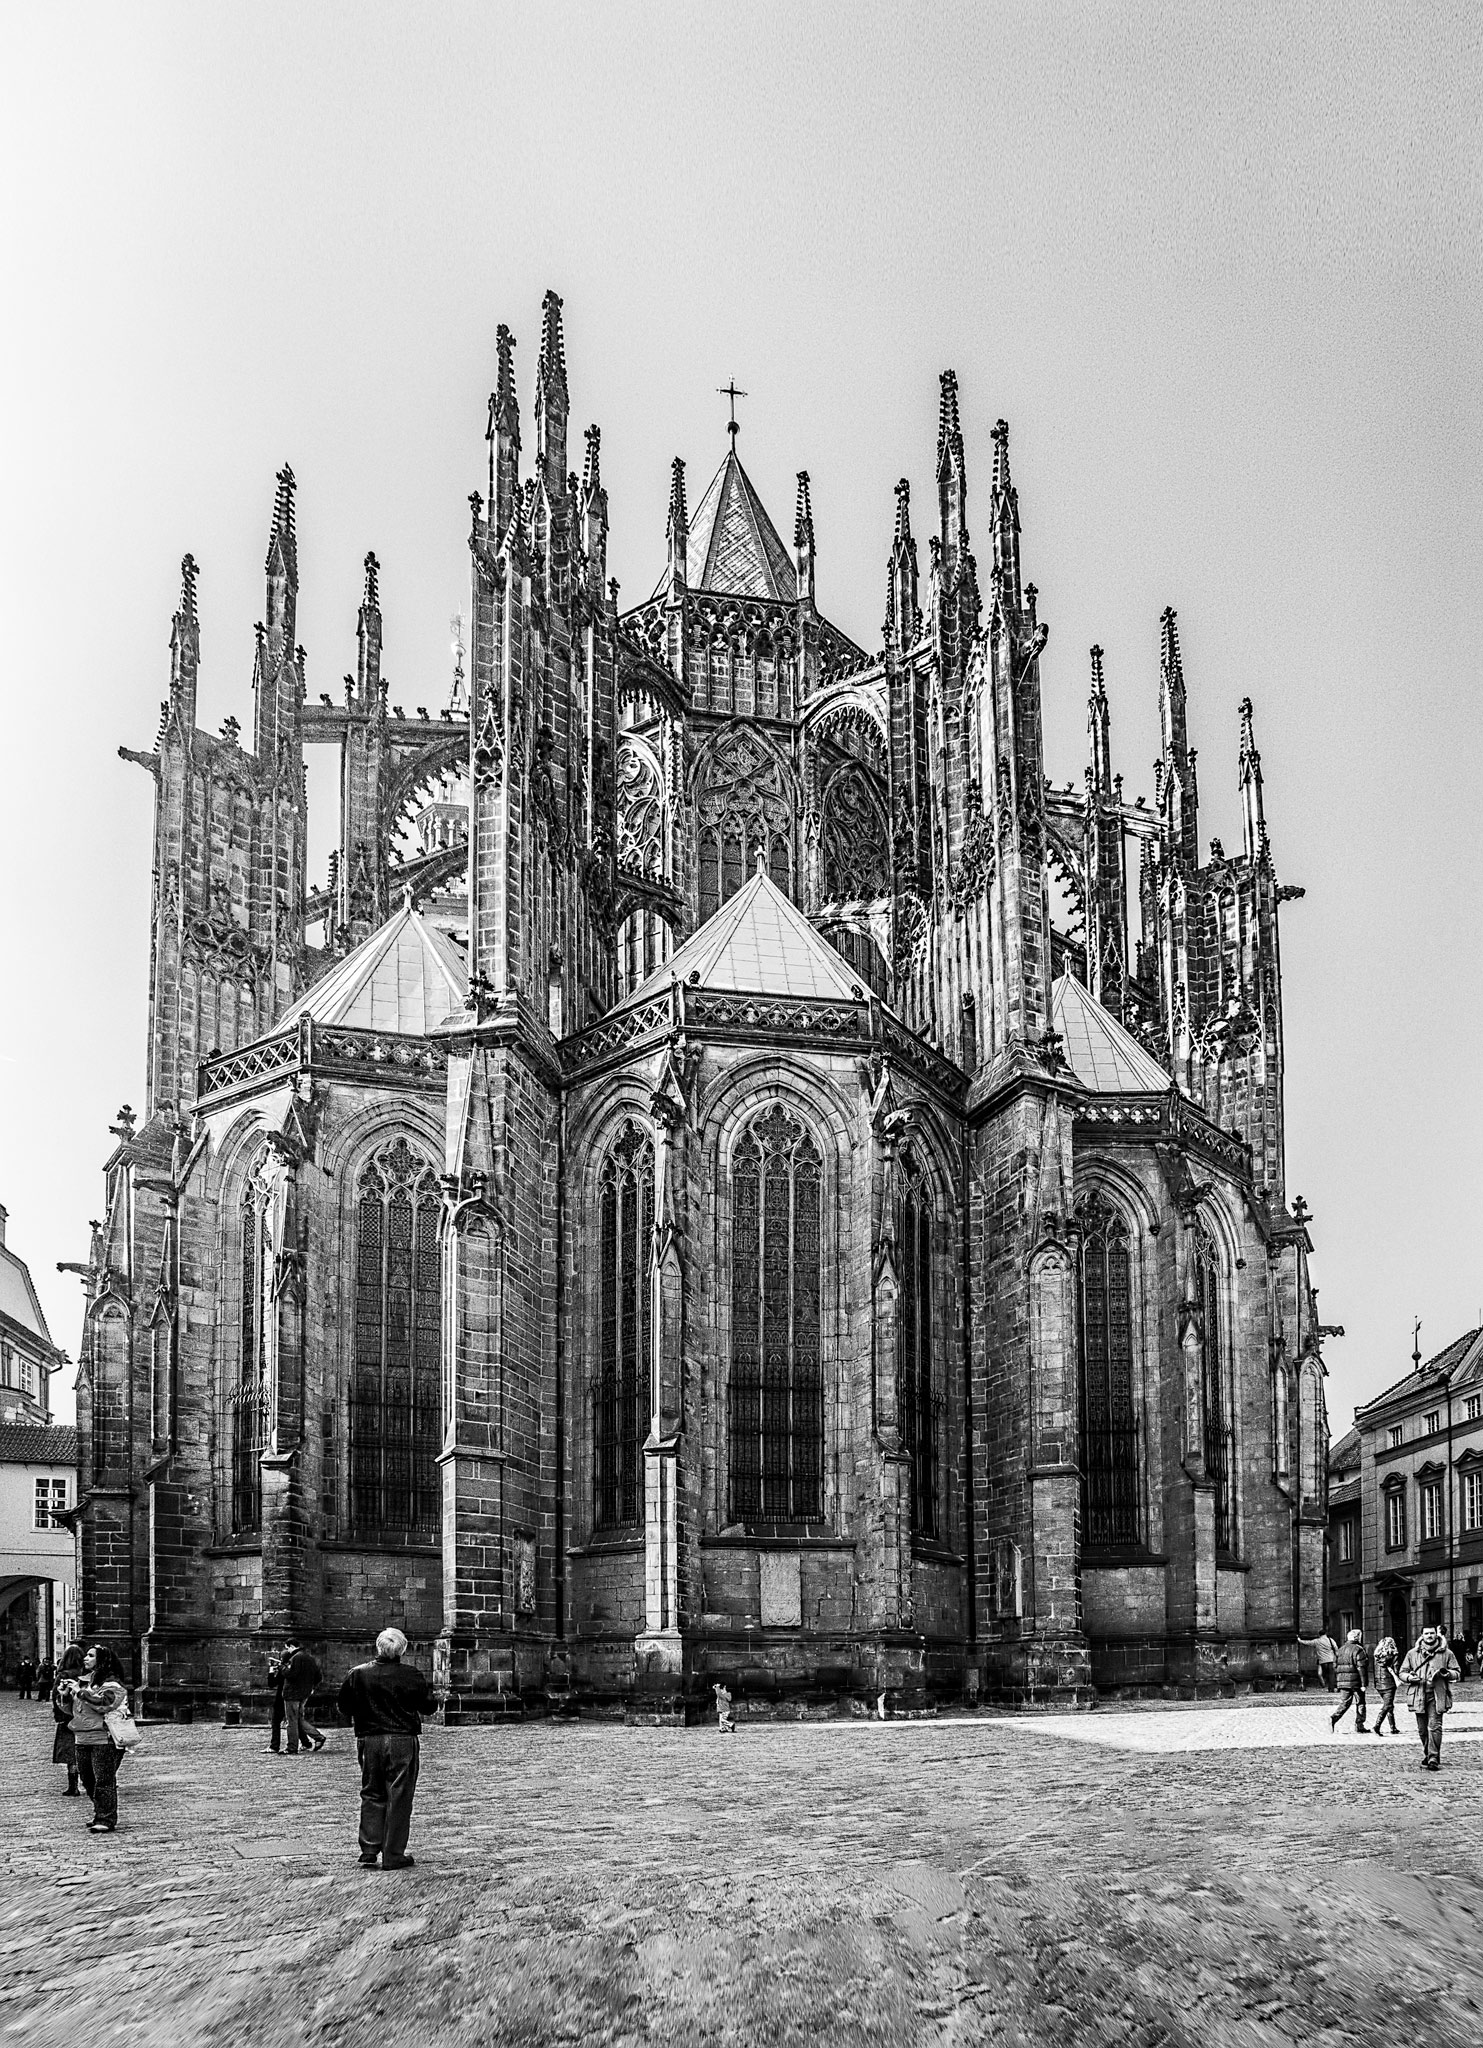 Photo: St. Vitus East End -from a 2008 visit.  This is a panorama of the east end of St. Vitus Cathedral, Prague. It is made from 7 hand-held shots. I made a similar pano back in 2008, but the tools in Photoshop are much better now, so I took another run at it.  The original frames were each straightened in #Lightroom5  before being sent over to be merged in  #PhotoshopCC . Next came #TopazDenoise3  followed by #TopazDetail5.   #SilverEfexPro2  was applied to convert to B/W.  #Travel   #CzechRepublic   #Prague   #StVitusCathedral   #CathedralPhotography